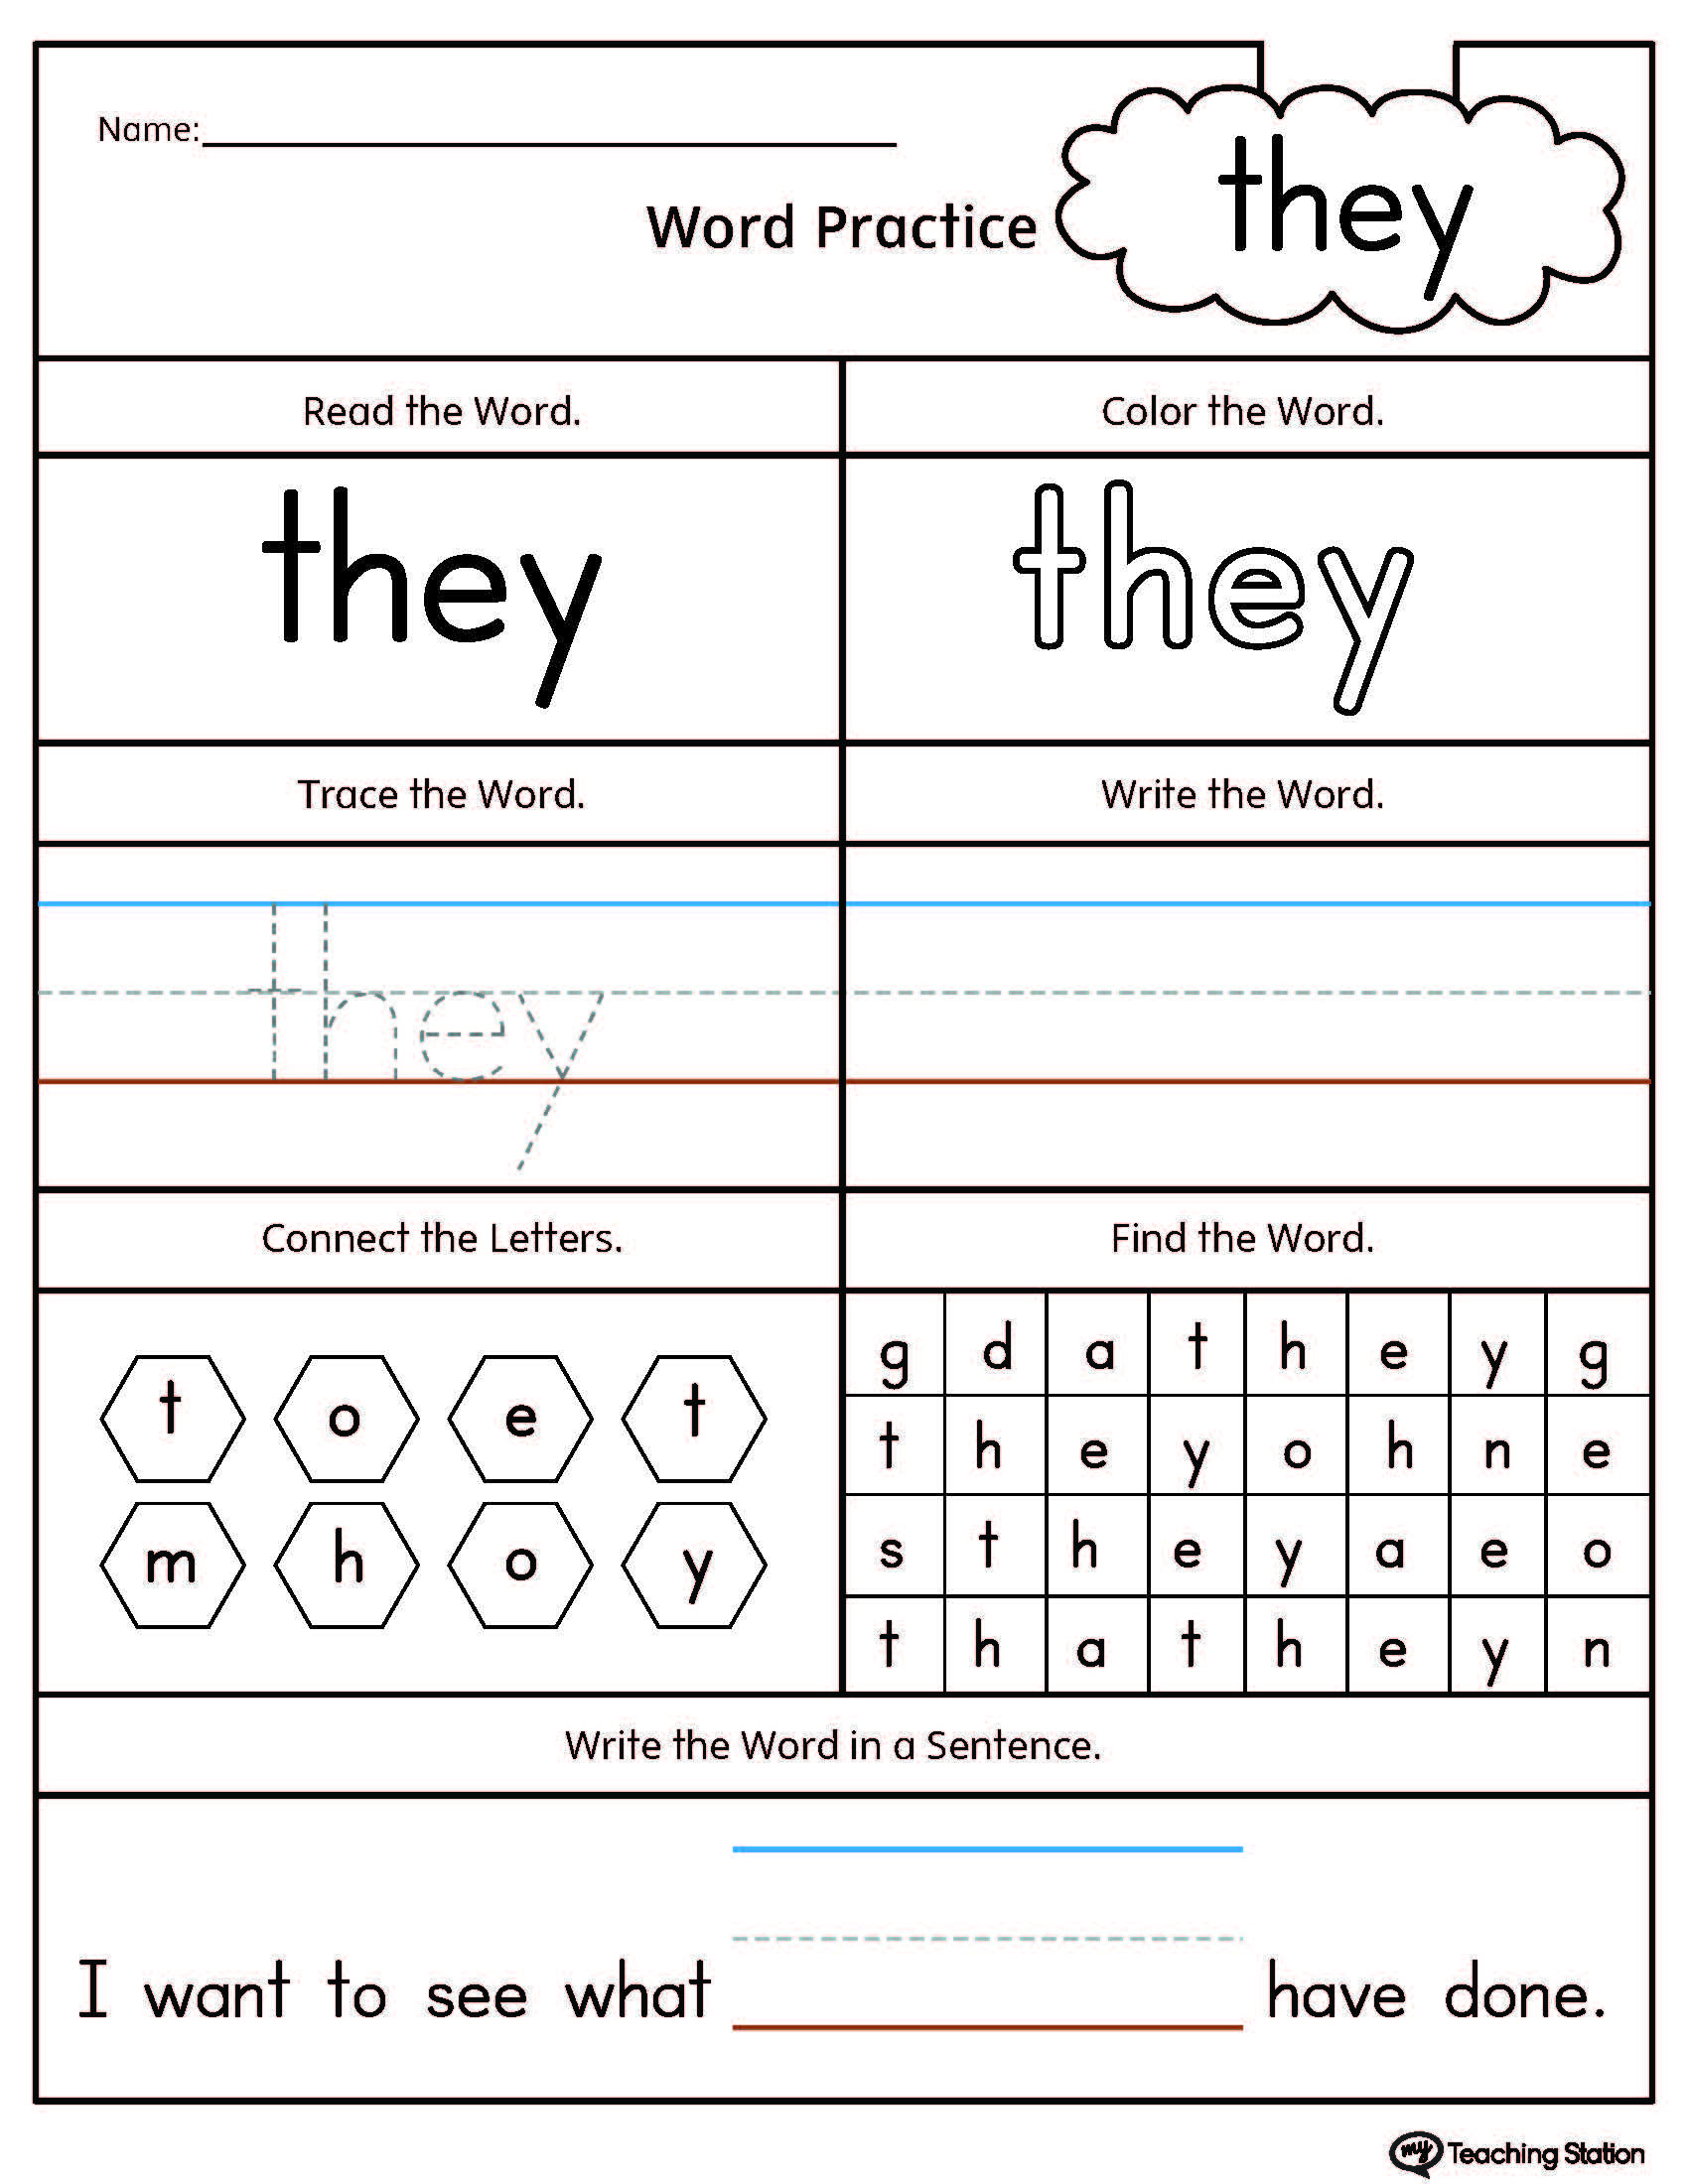 High Frequency Words Printable Worksheets | Kindergarten Sight Words | Homeschool Printable Worksheets Kindergarten